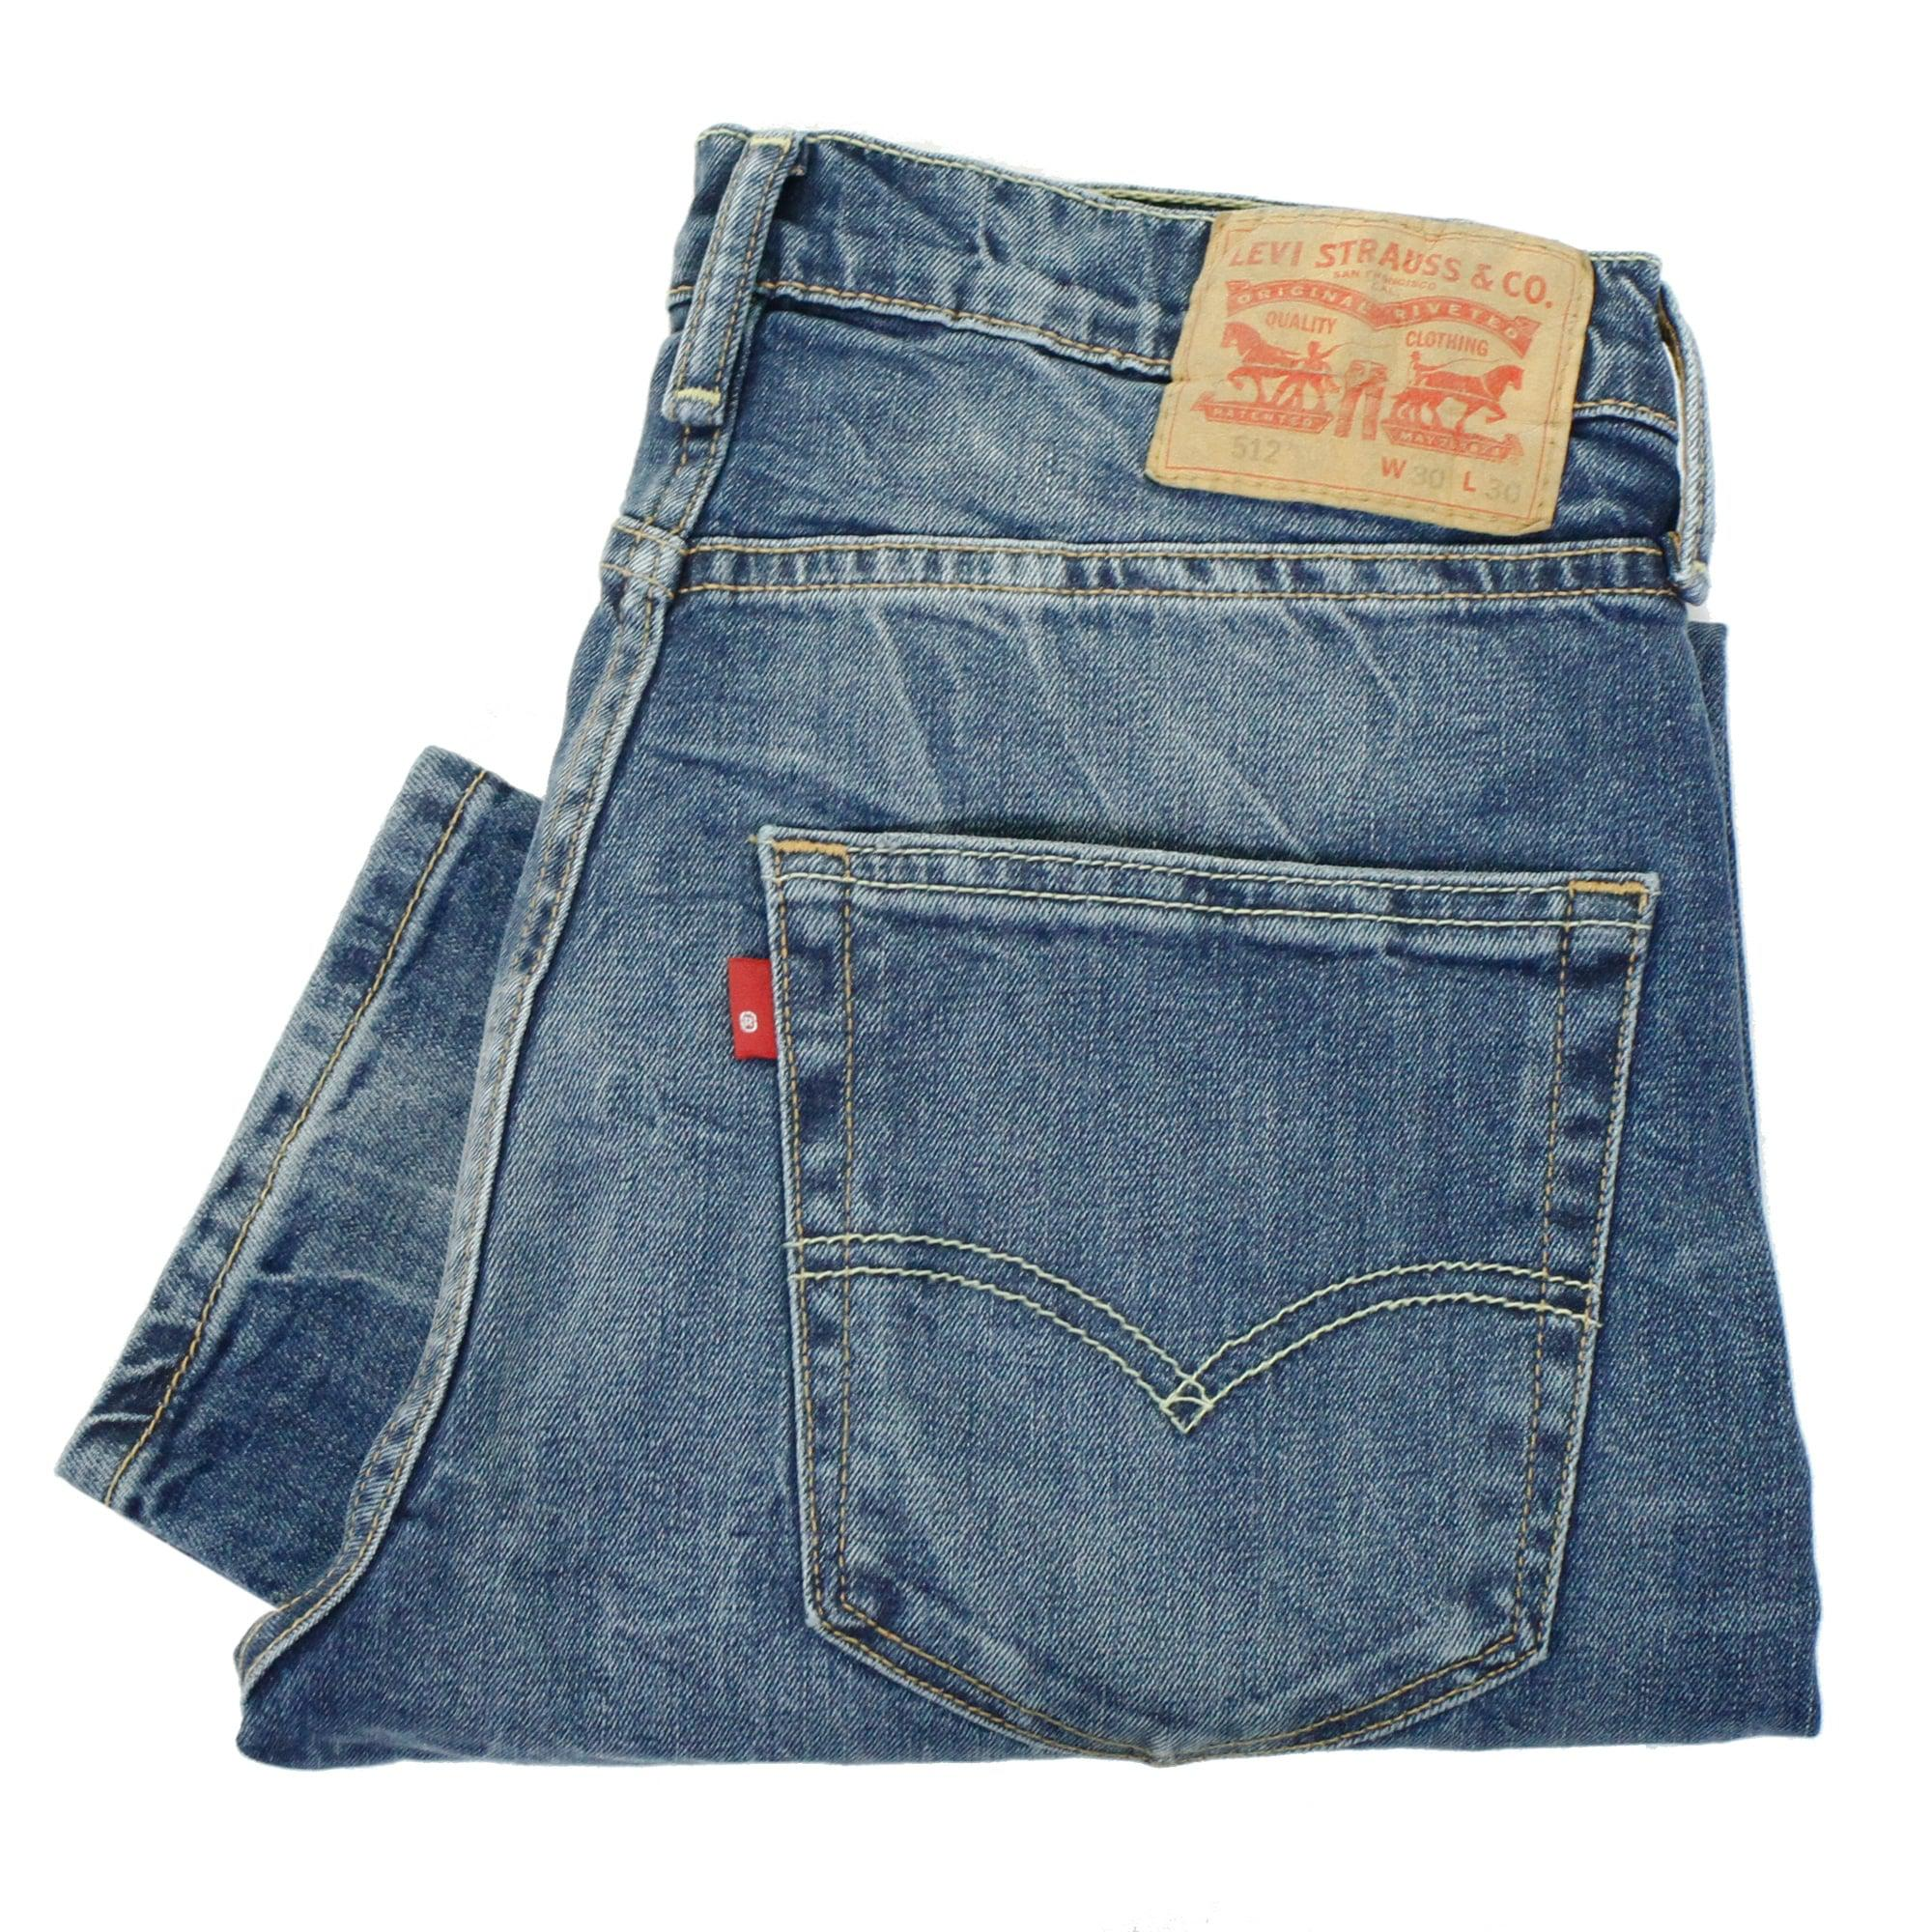 Dating levis jeans